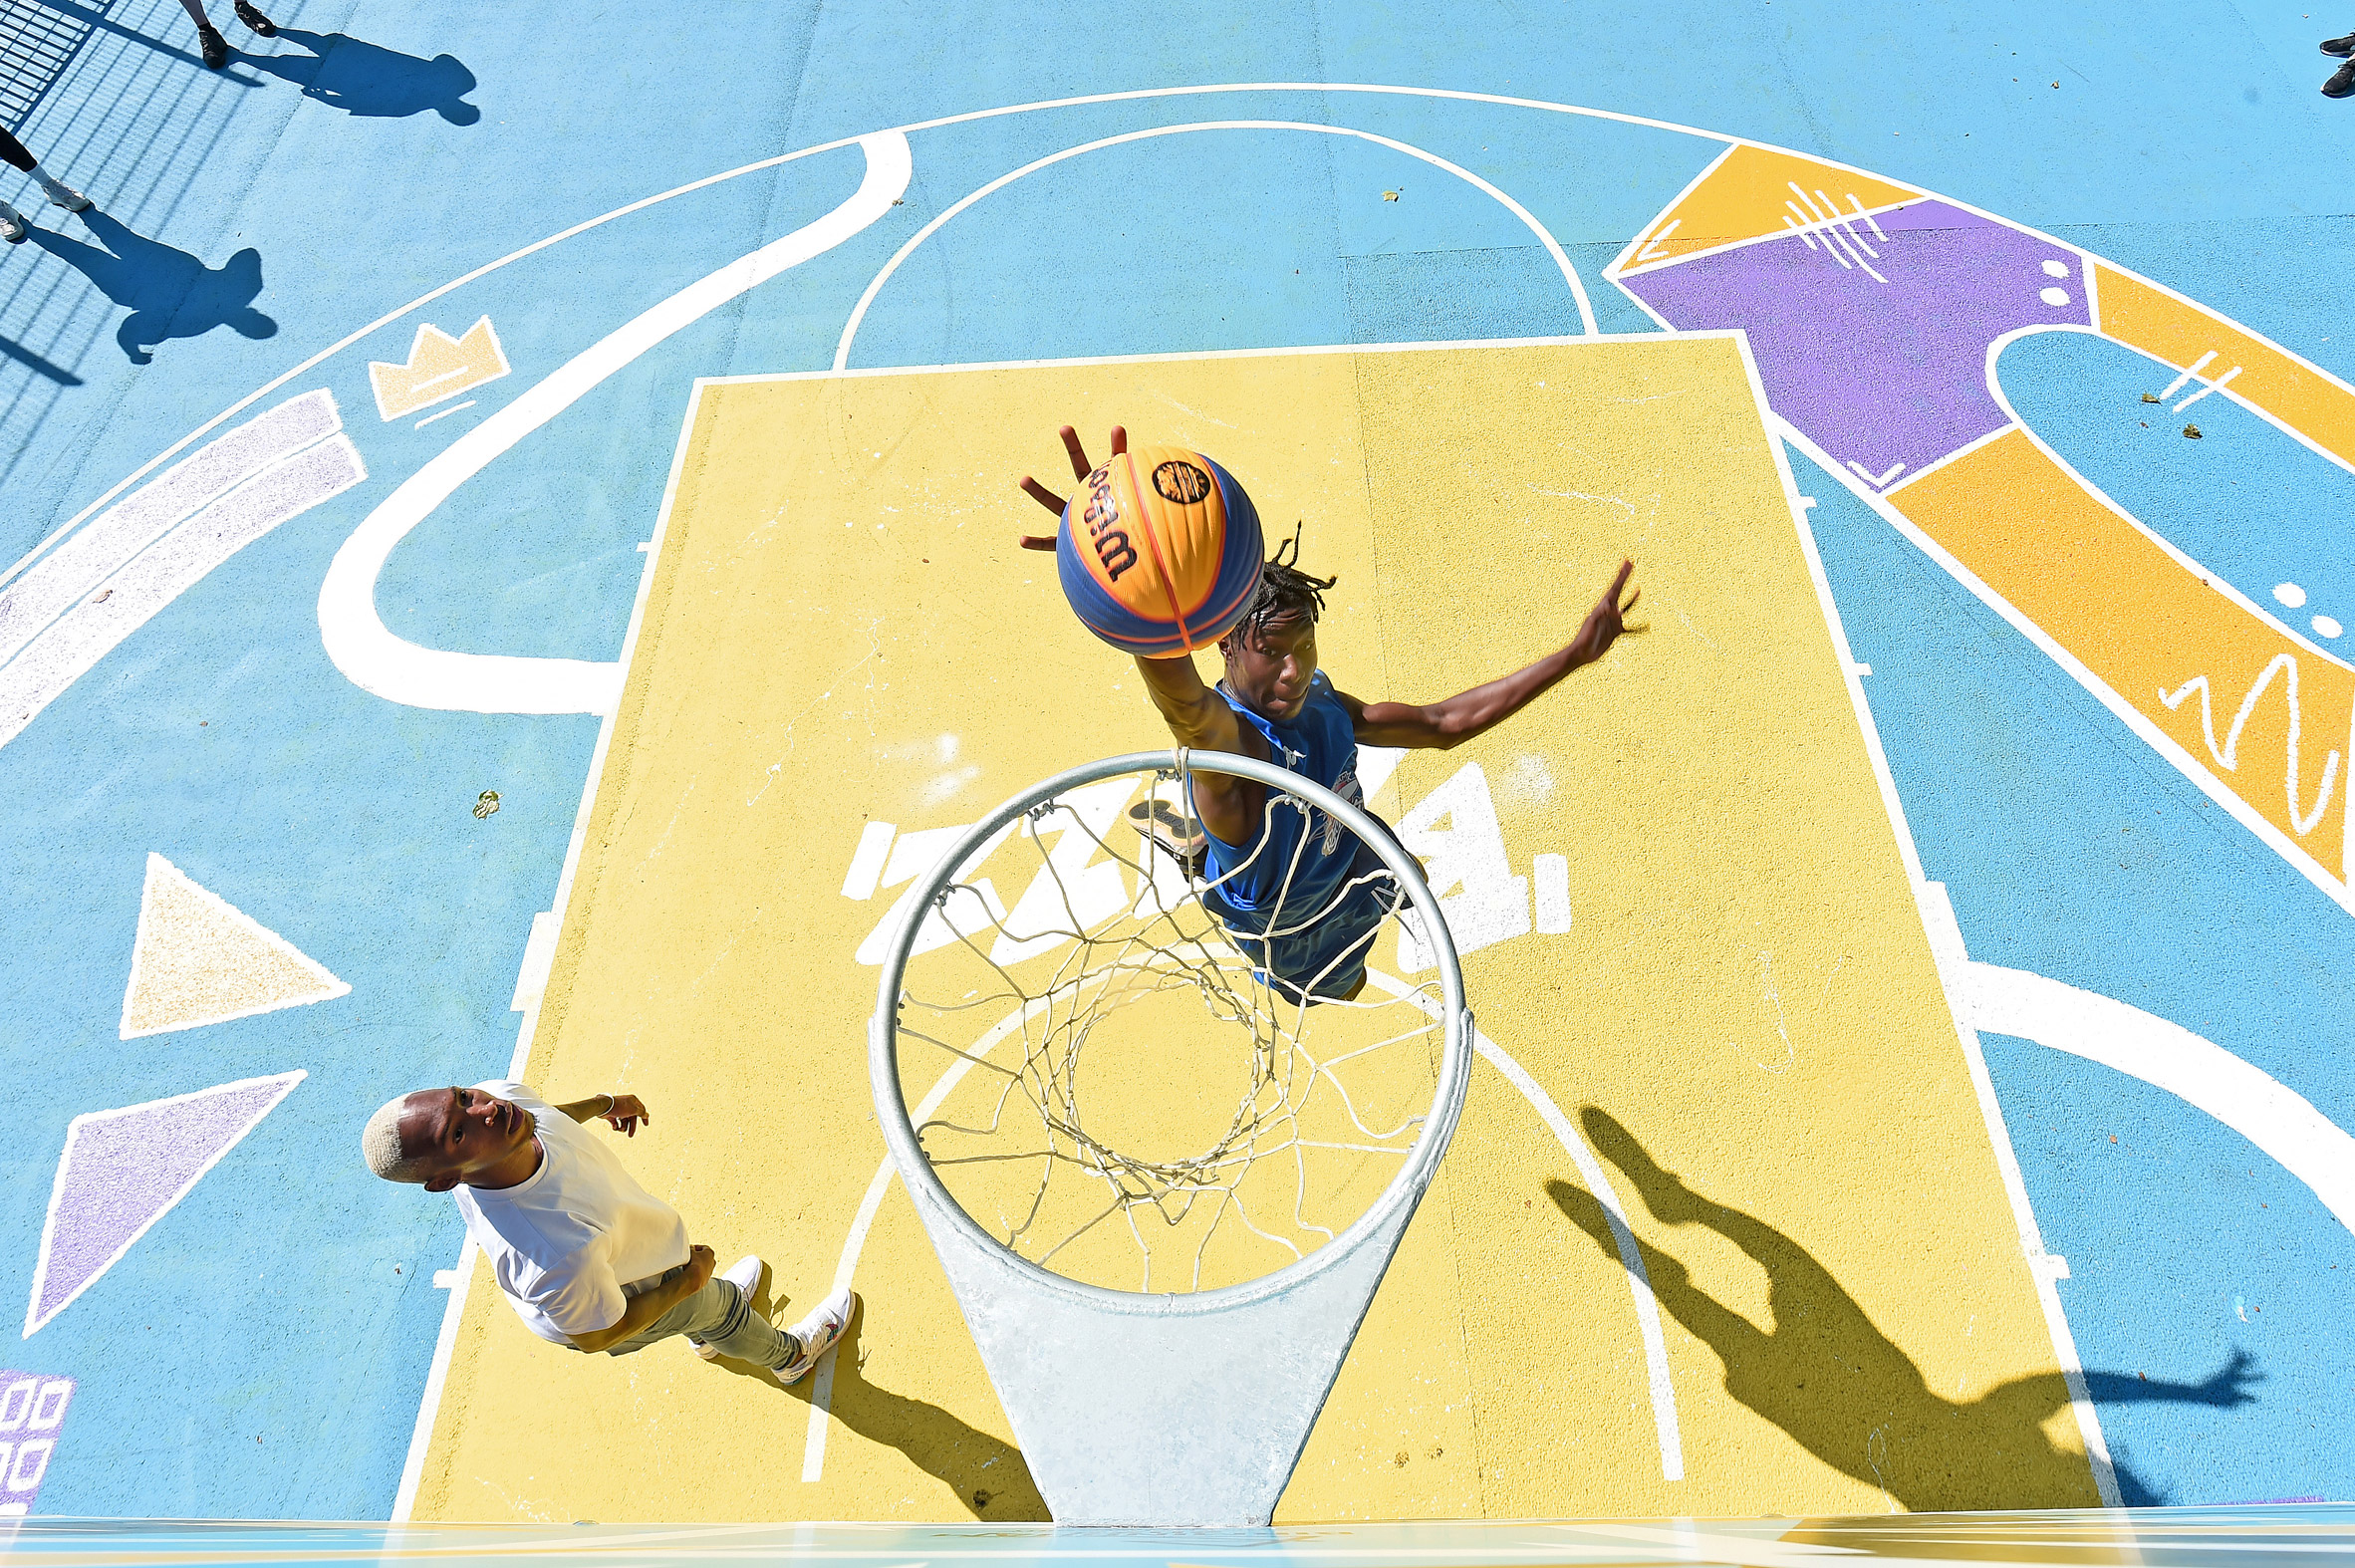 Two players play basketball on a colourful court